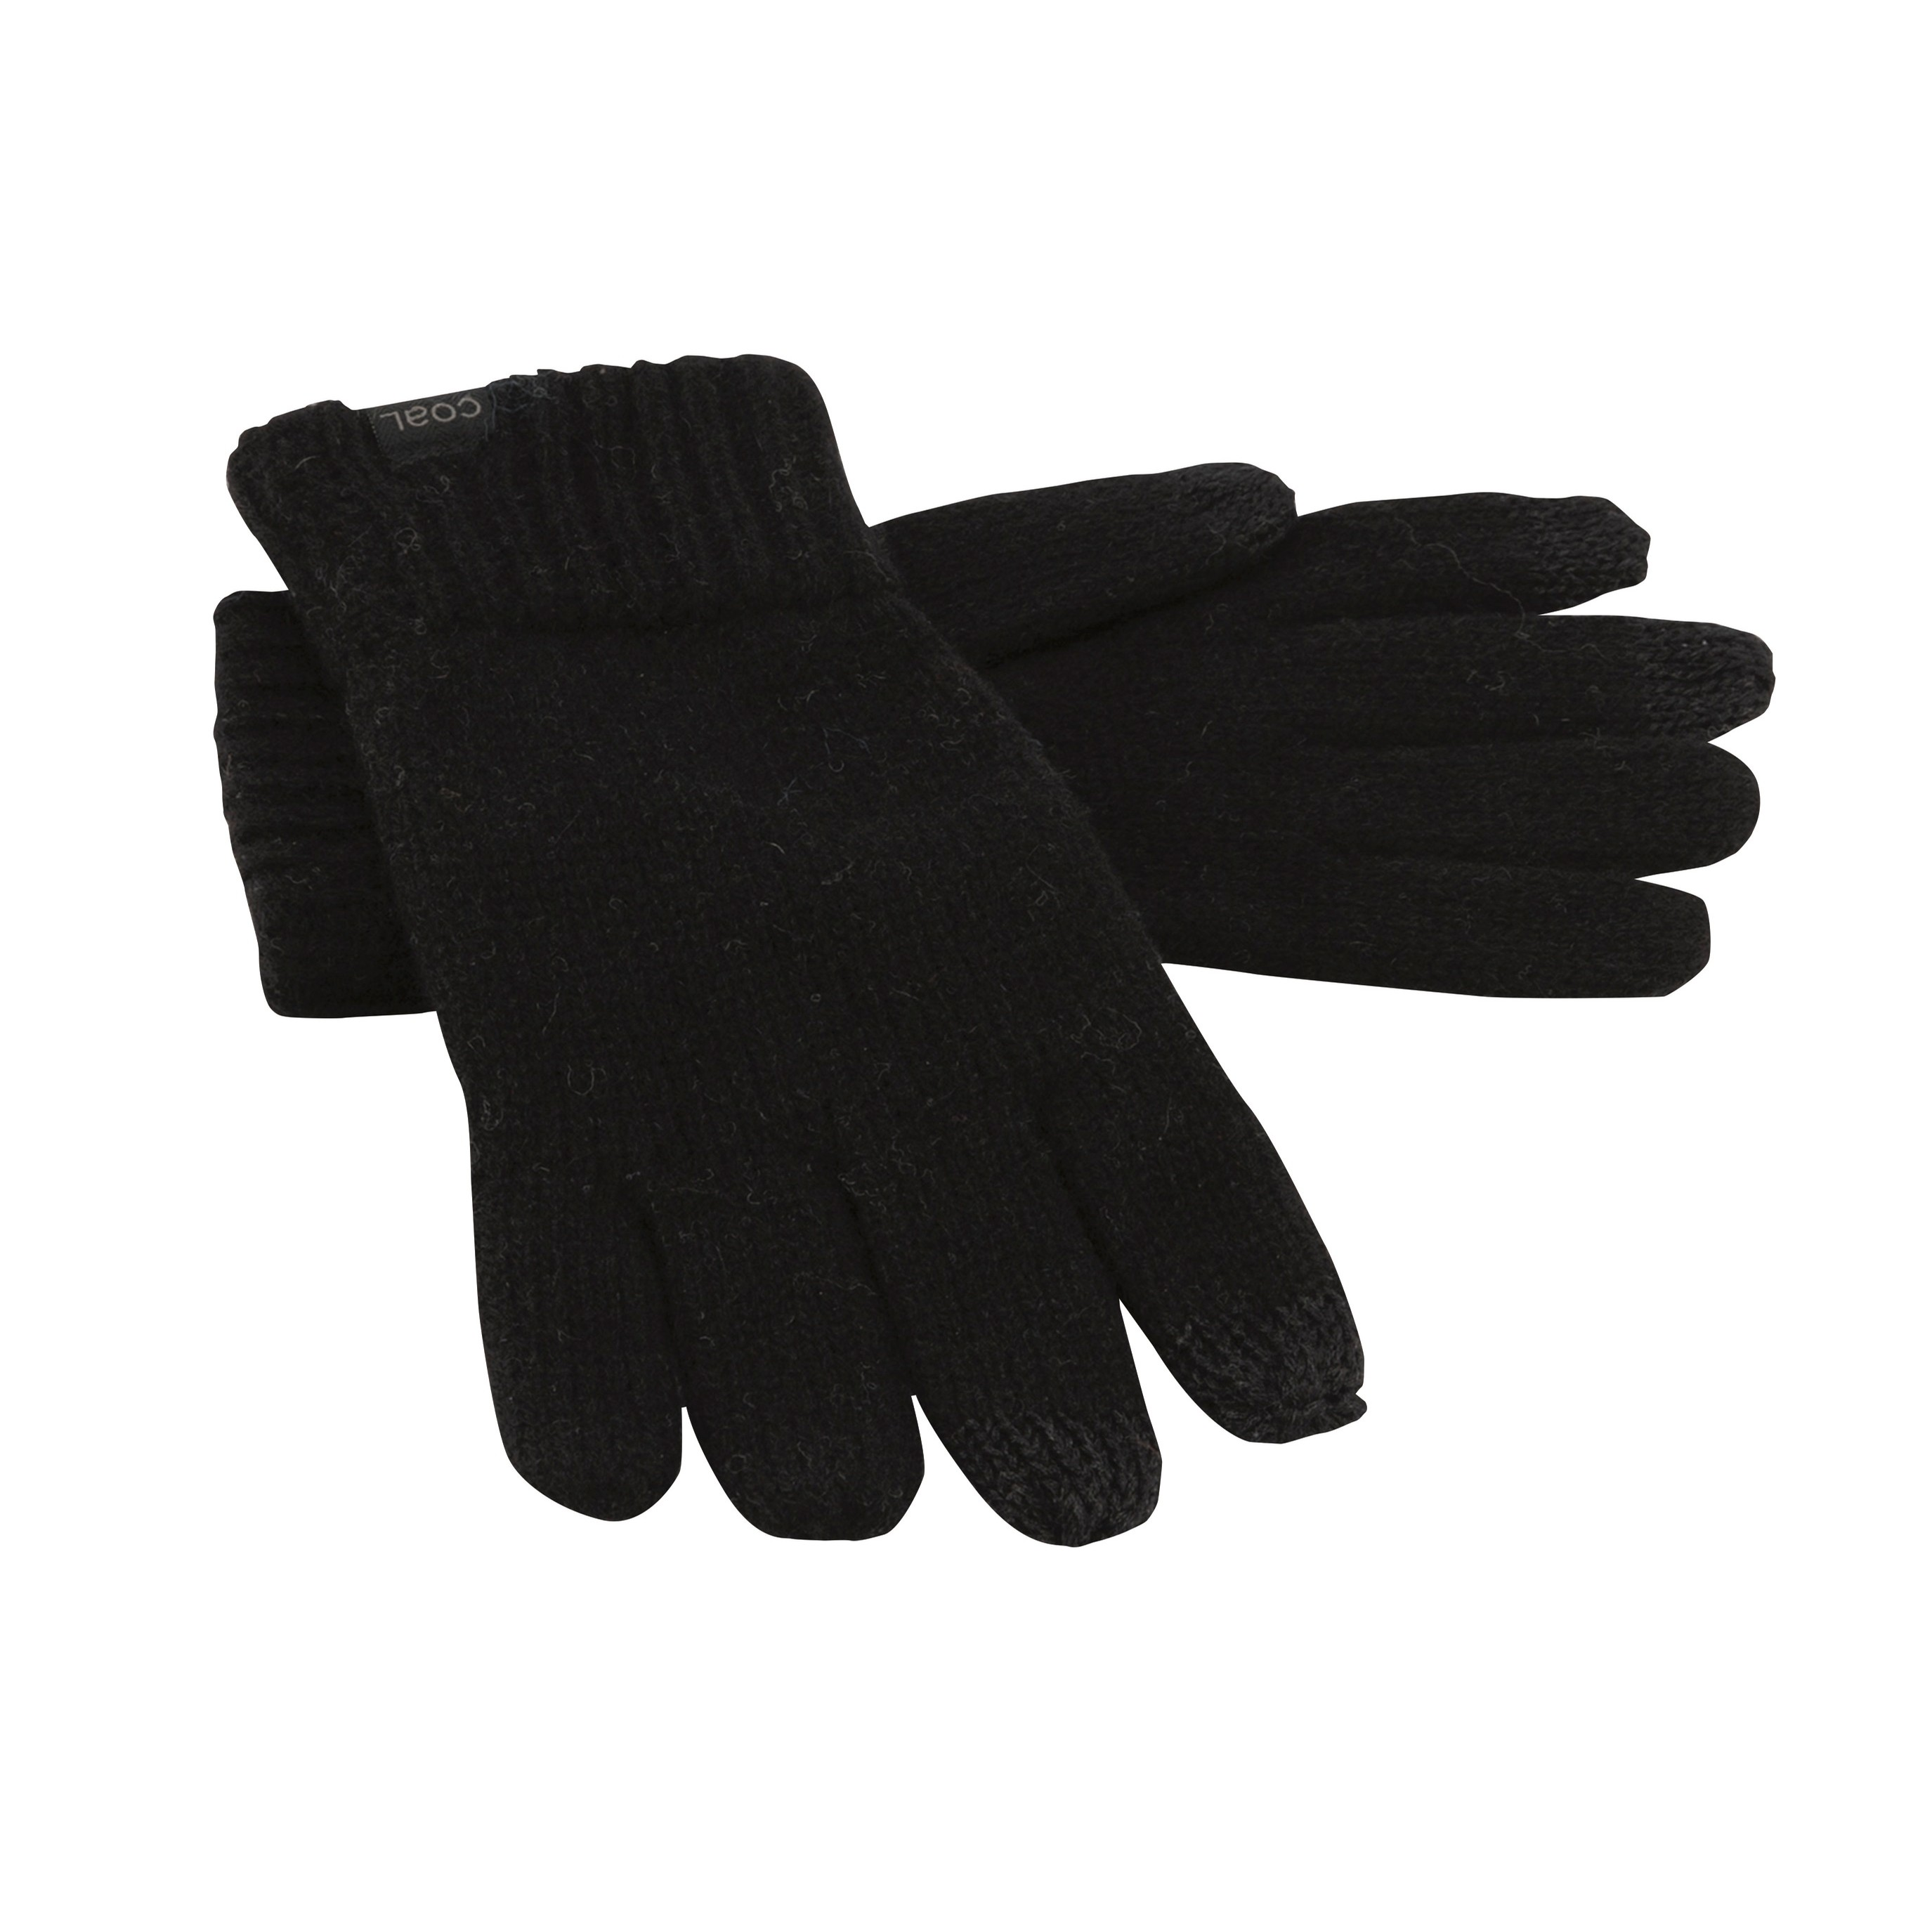 Coal The Randle Glove: Black